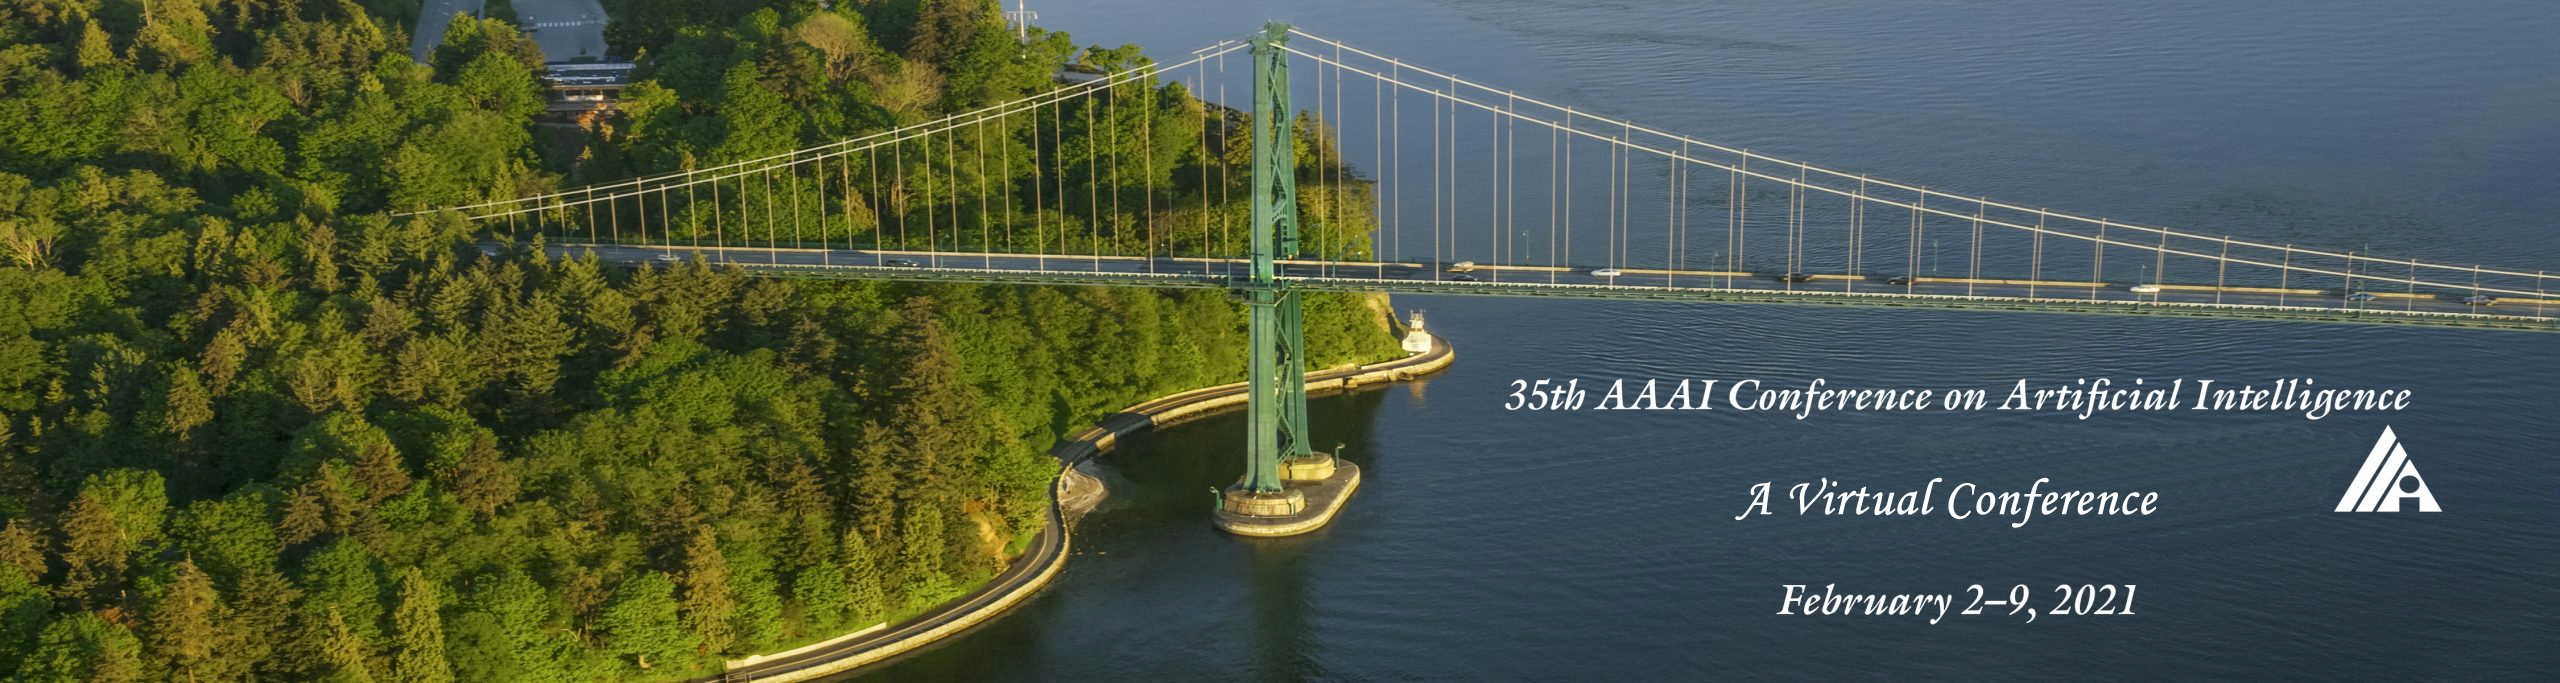 View of Lions Gate Bridge with sea and forest, Vancouver, British Columbia, Canada.